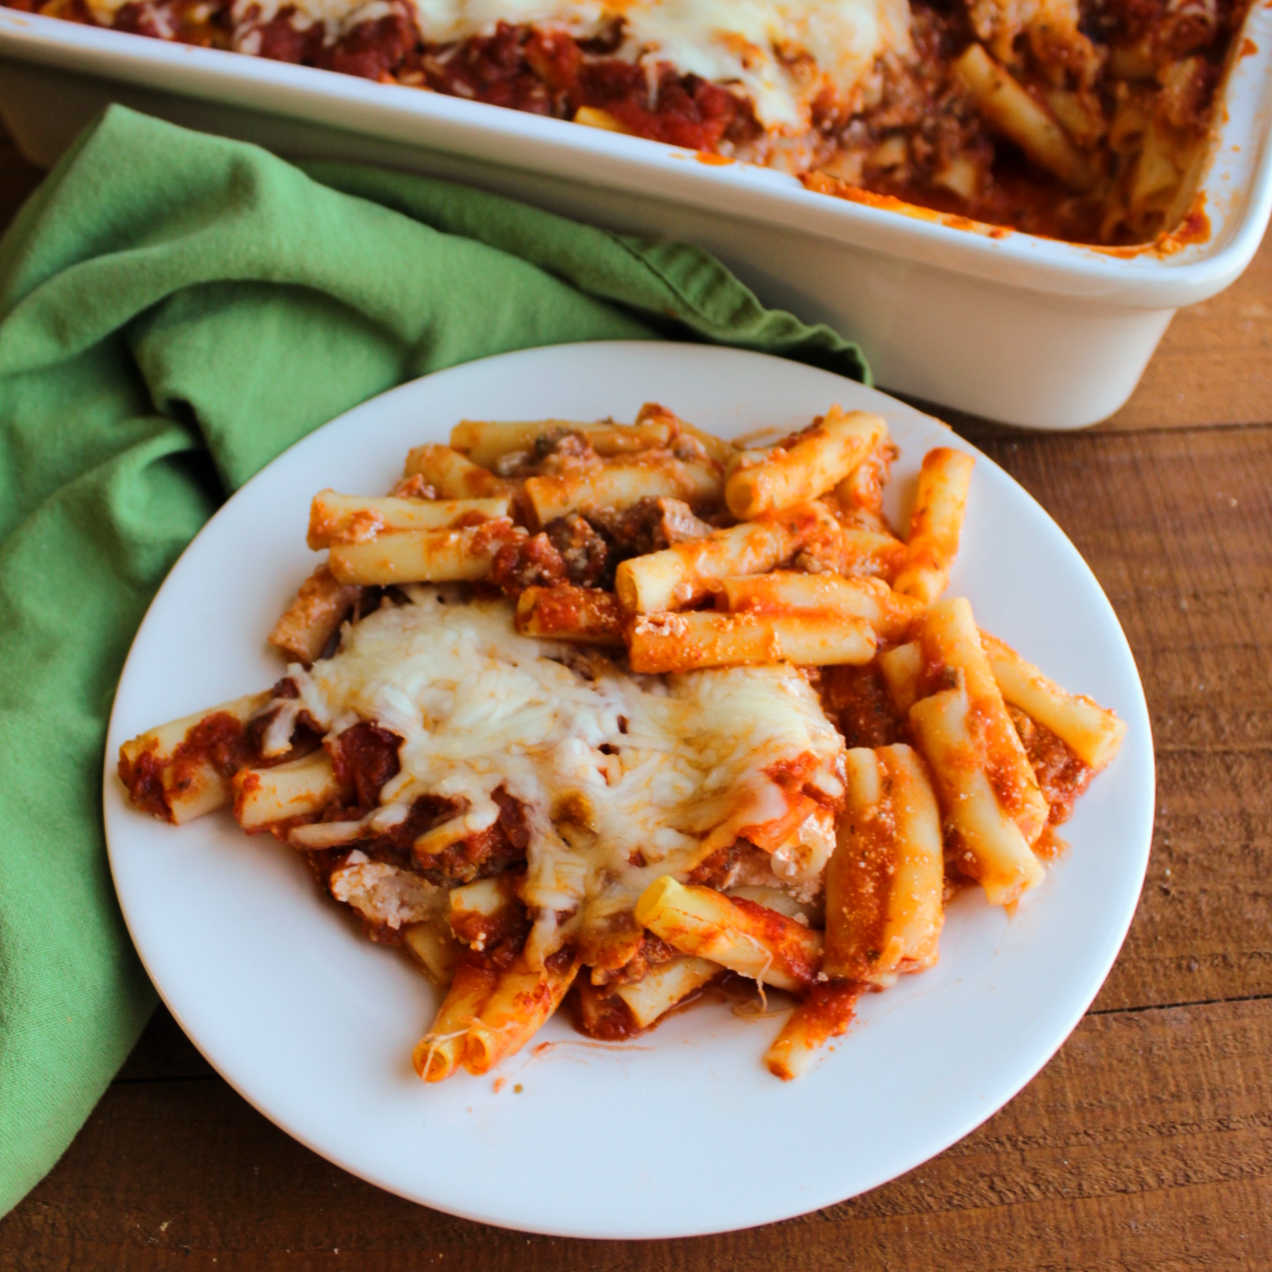 plate of cheesy baked ziti in front of casserole dish